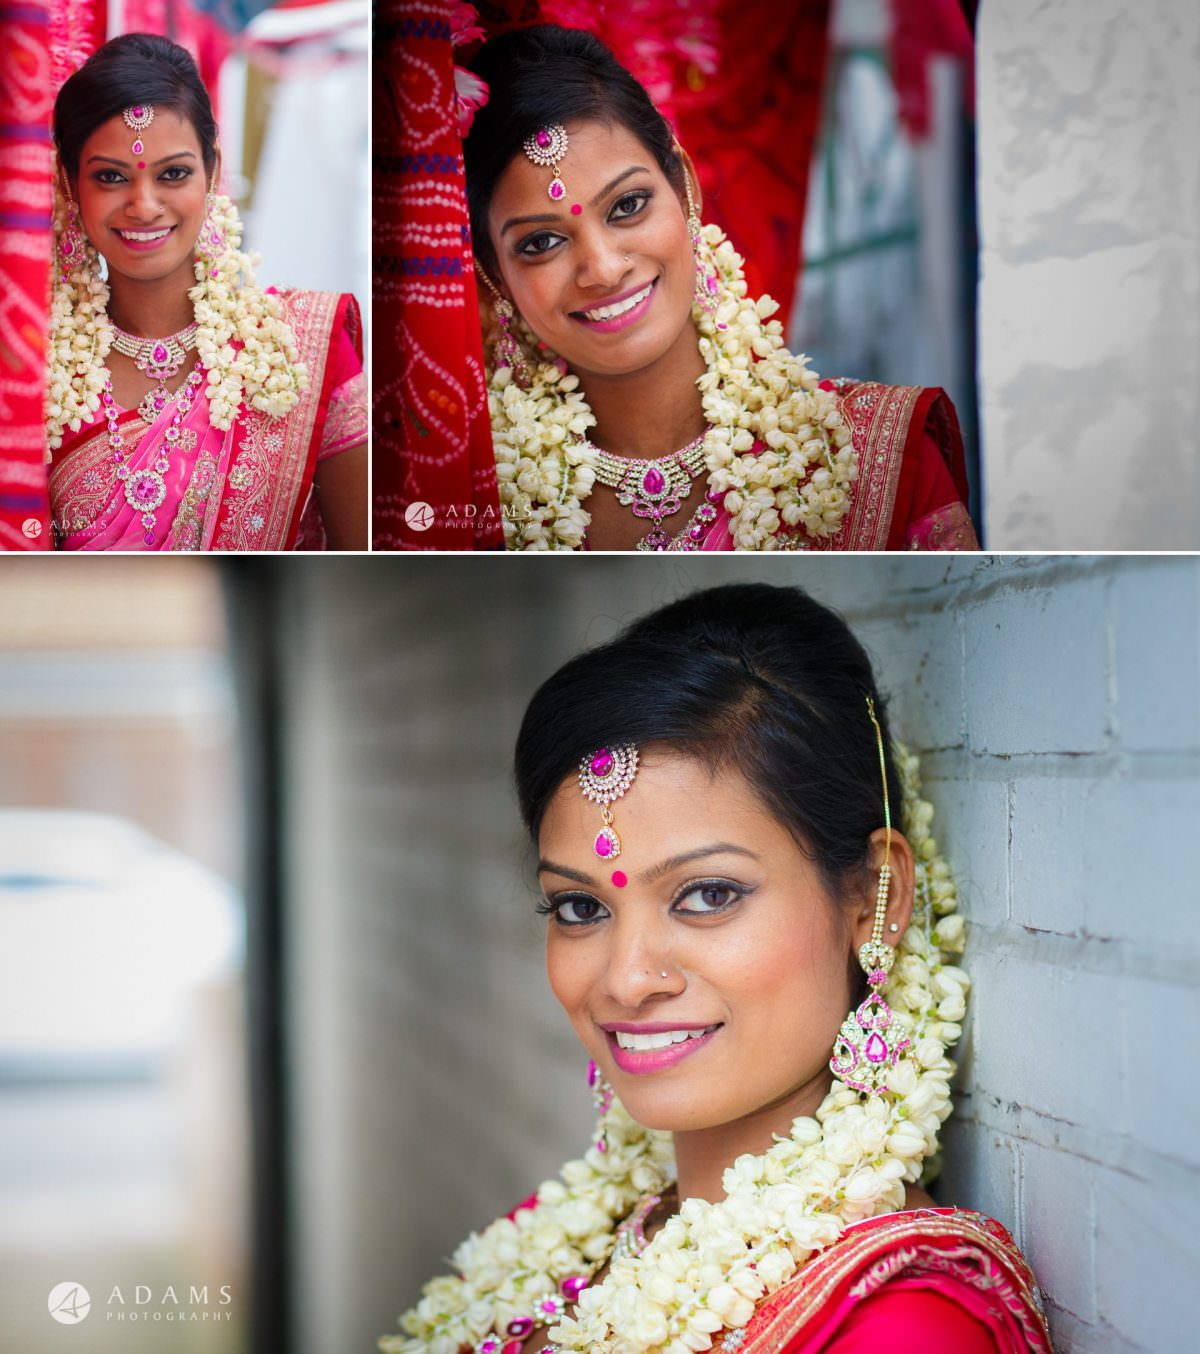 london photography - the tamil wedding